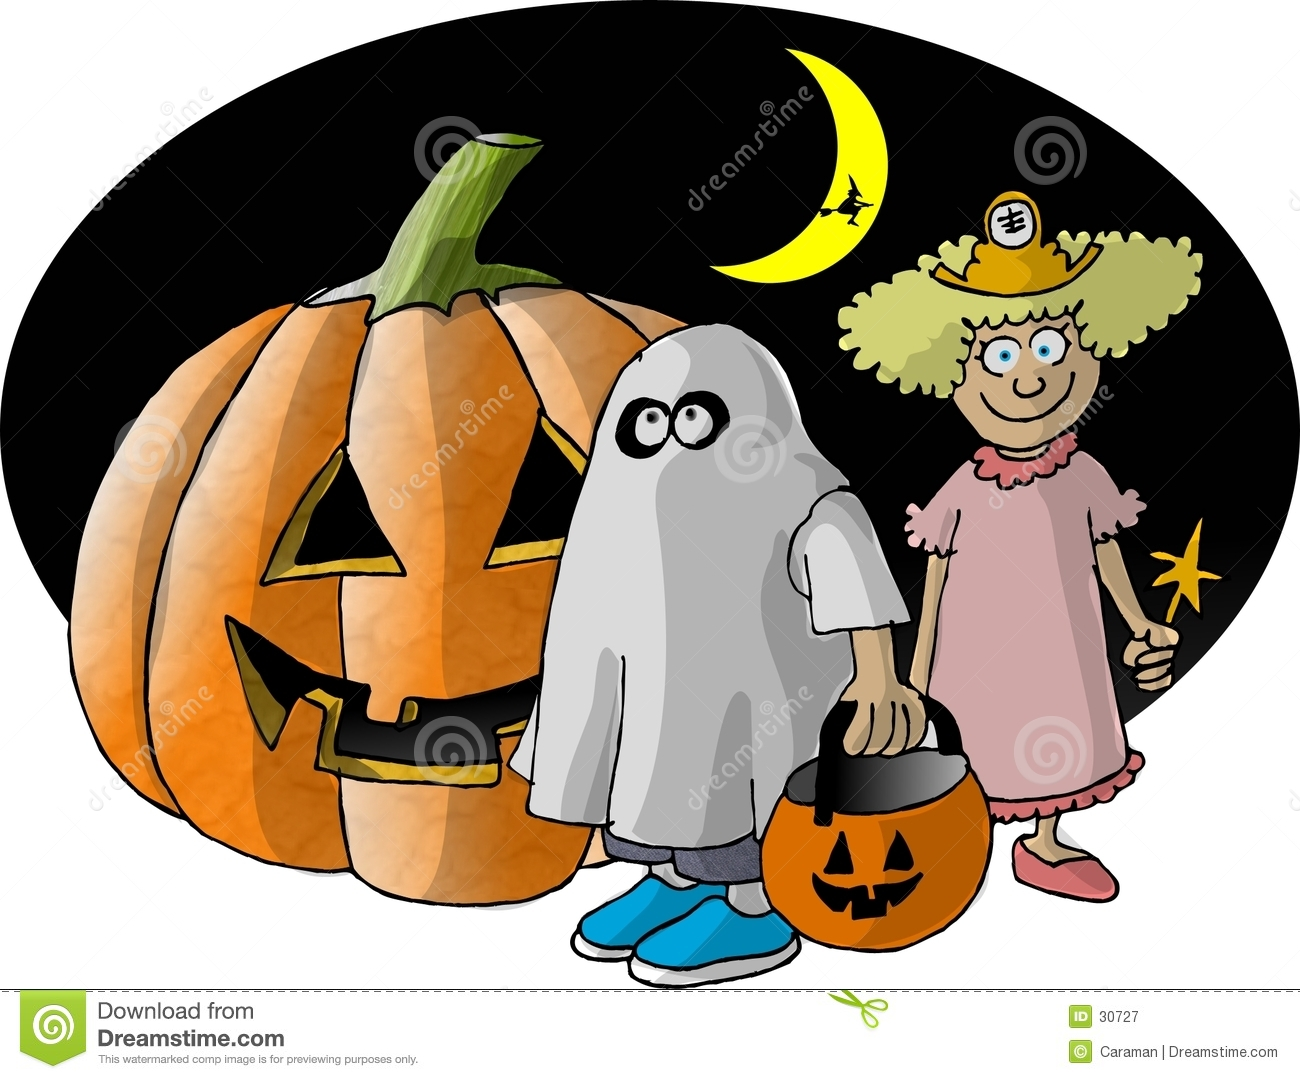 2 Trick or Treaters and a big Pumpkin